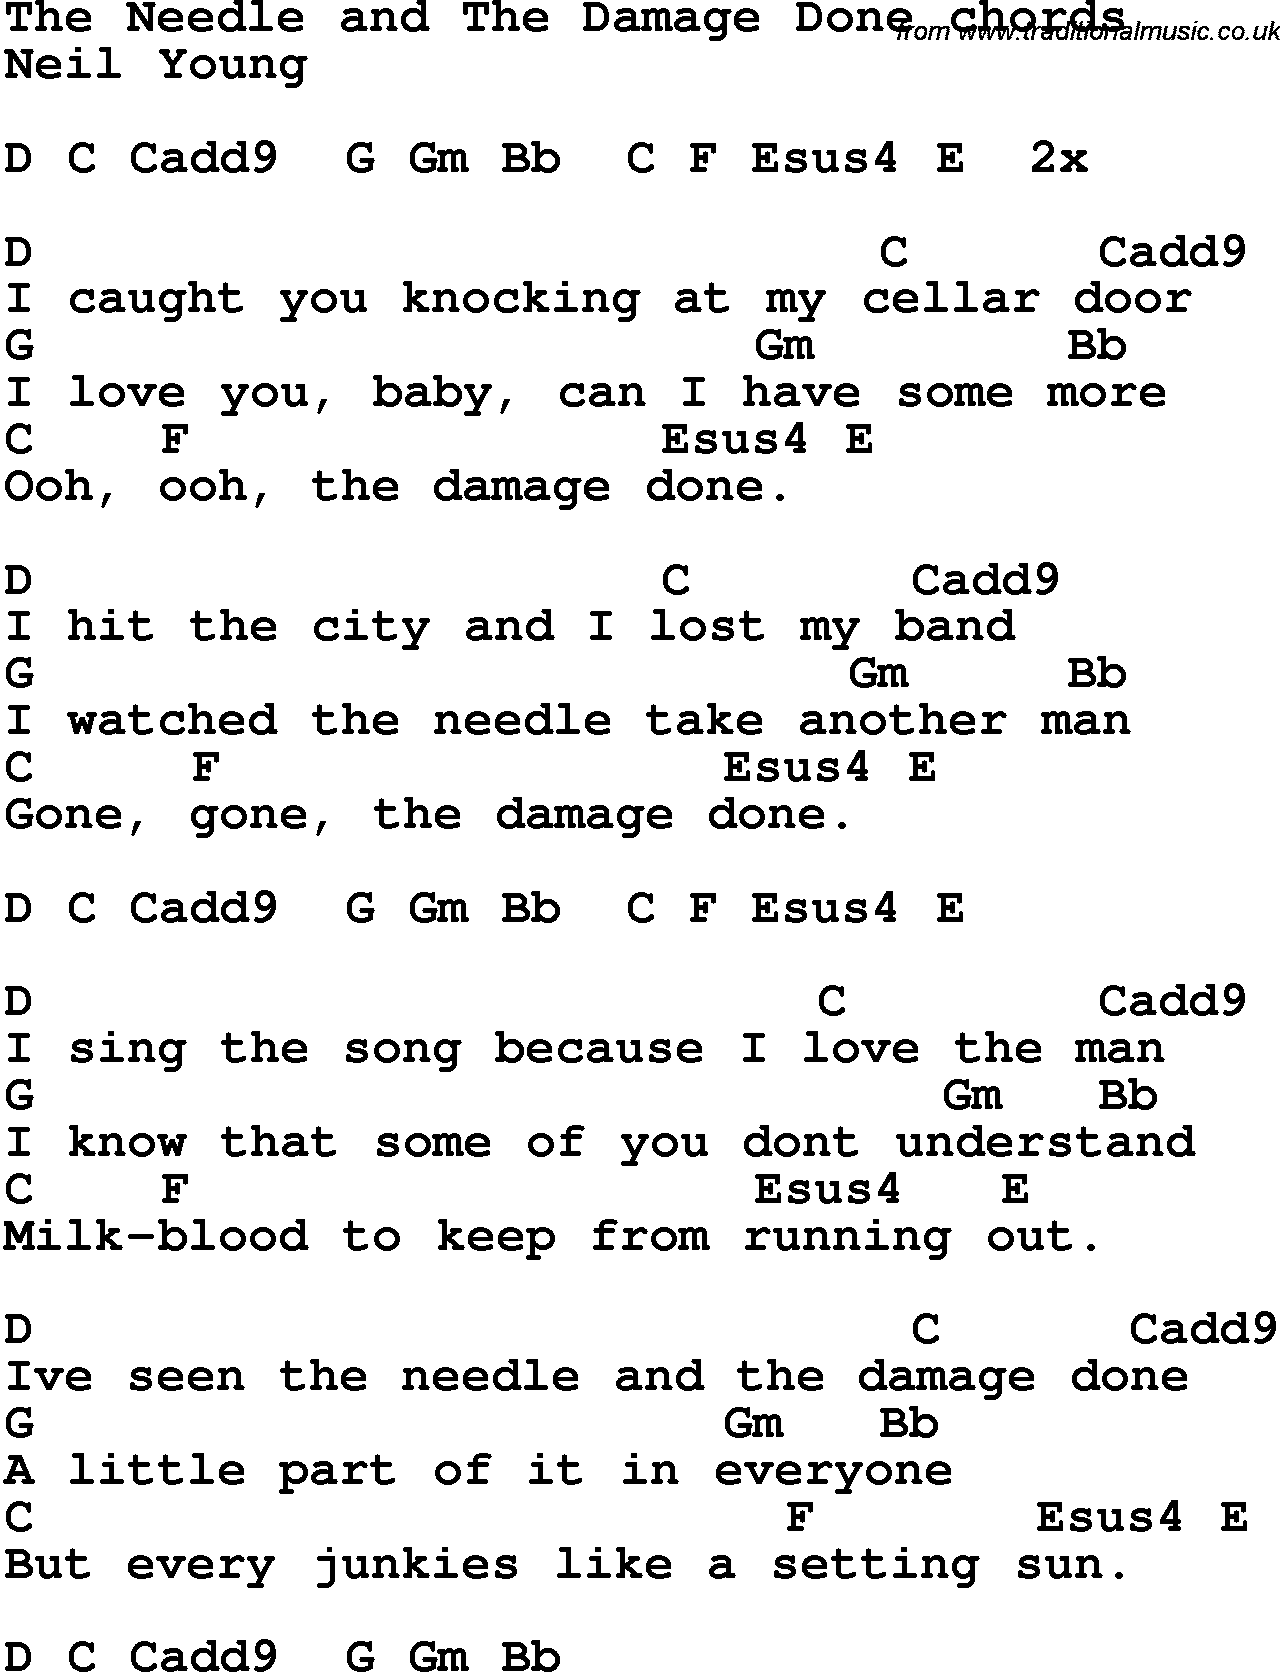 Song lyrics with guitar chords for The Needle And The Damage Done